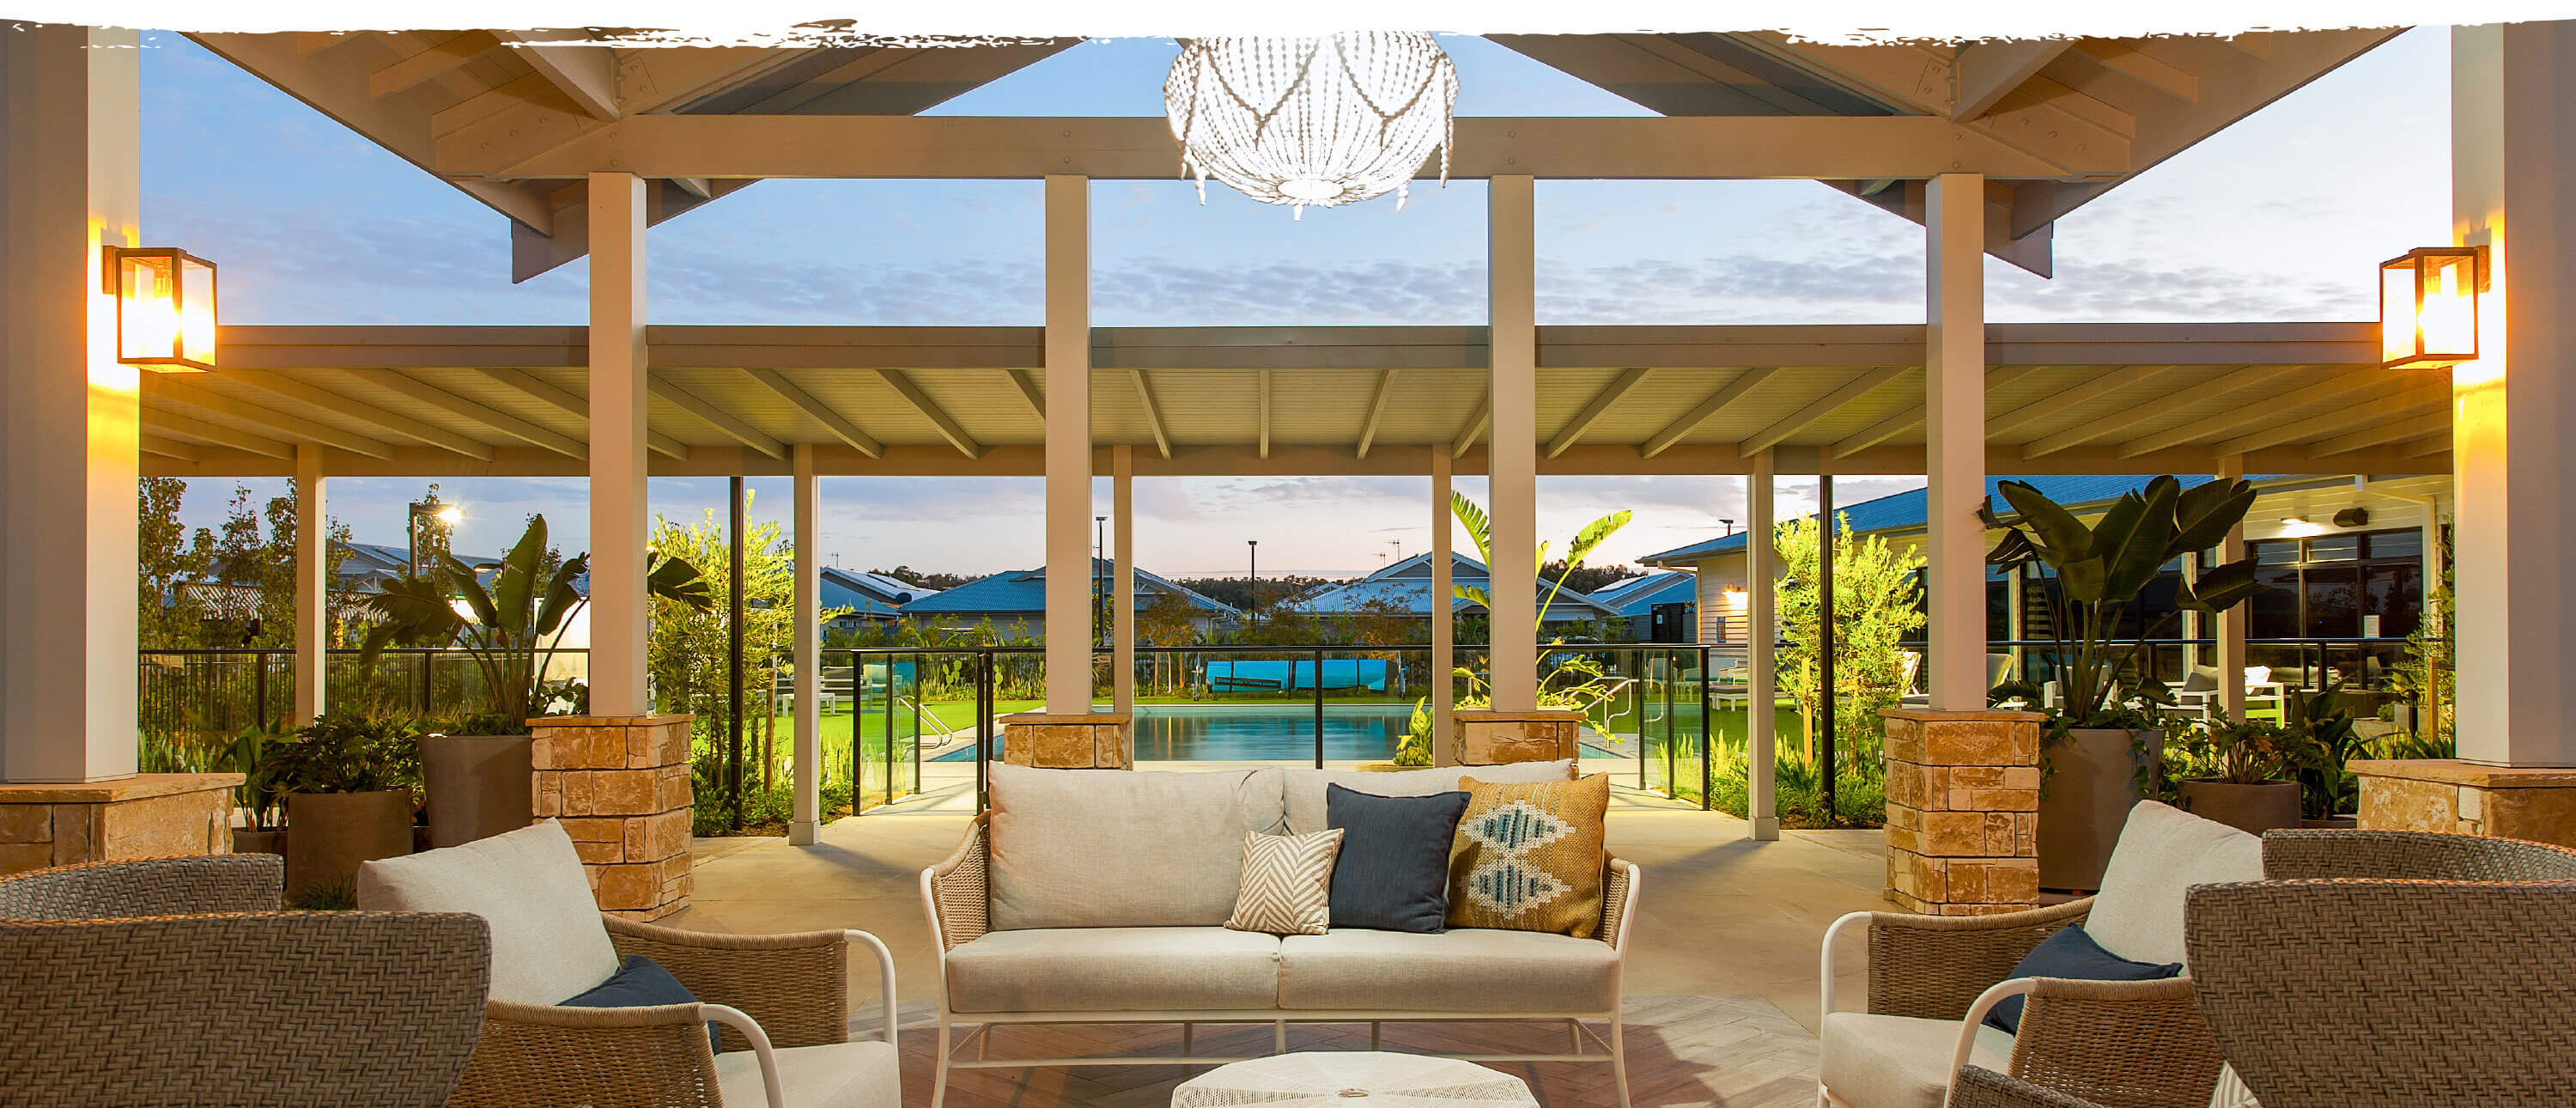 port cochere area at Latitude One in Port Stephens